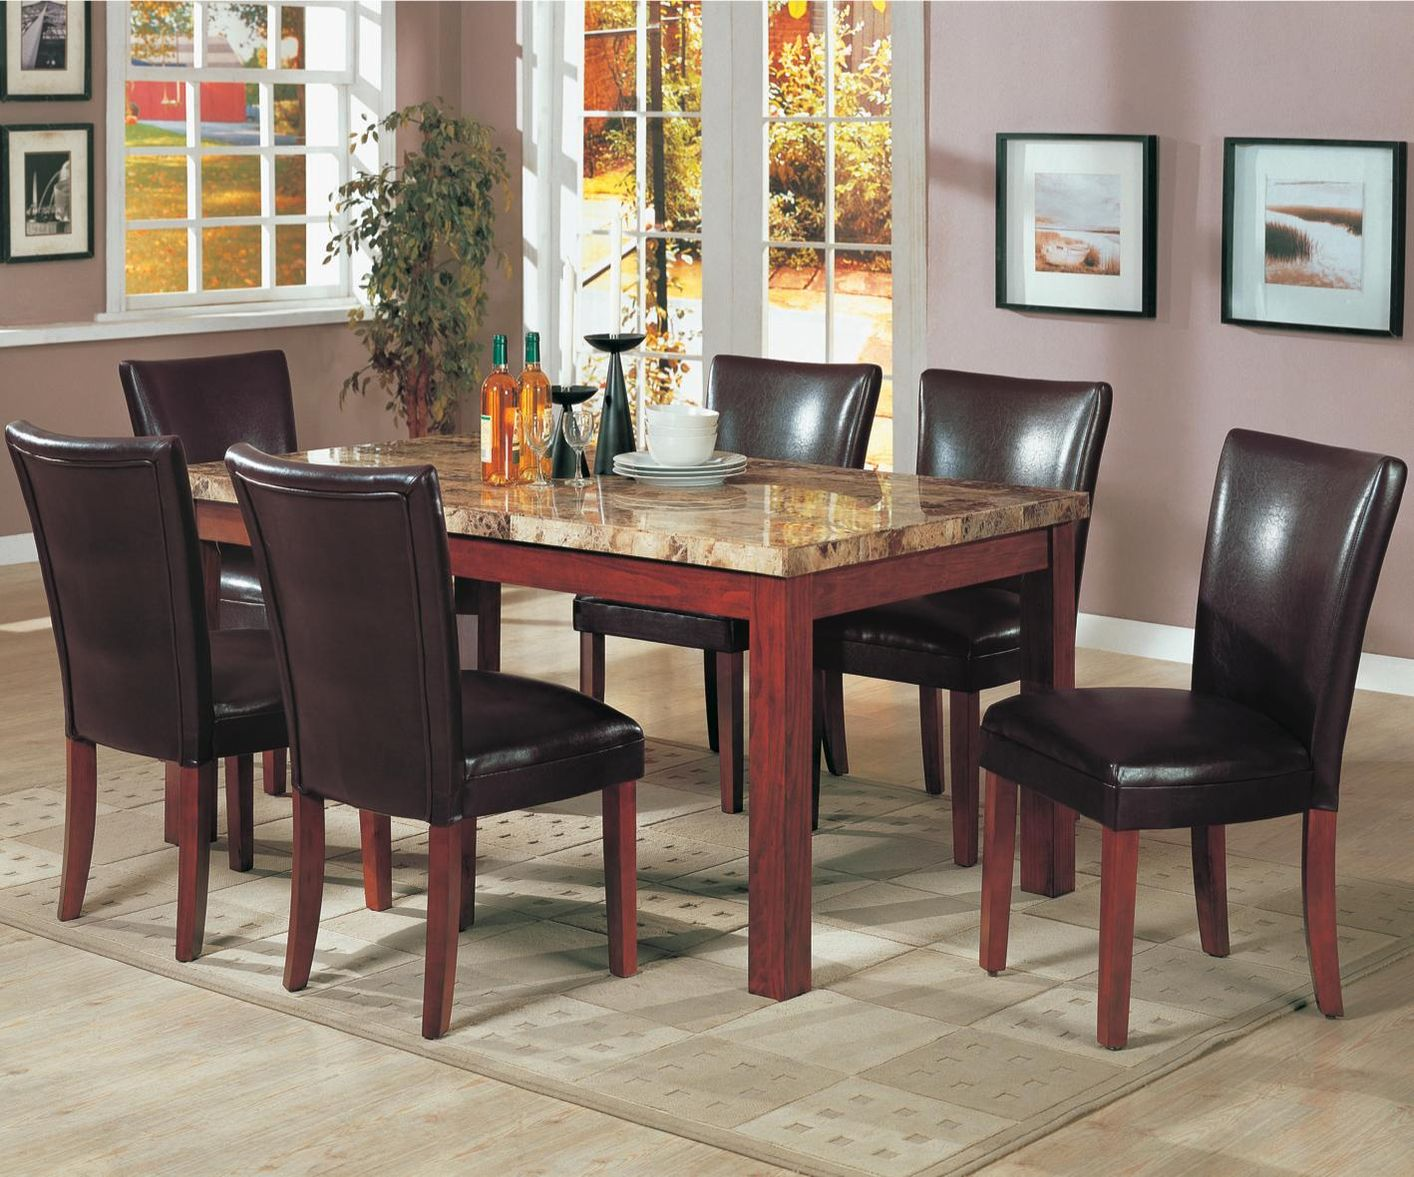 Telegraph Medium Brown Wood And Marble Dining Table Set